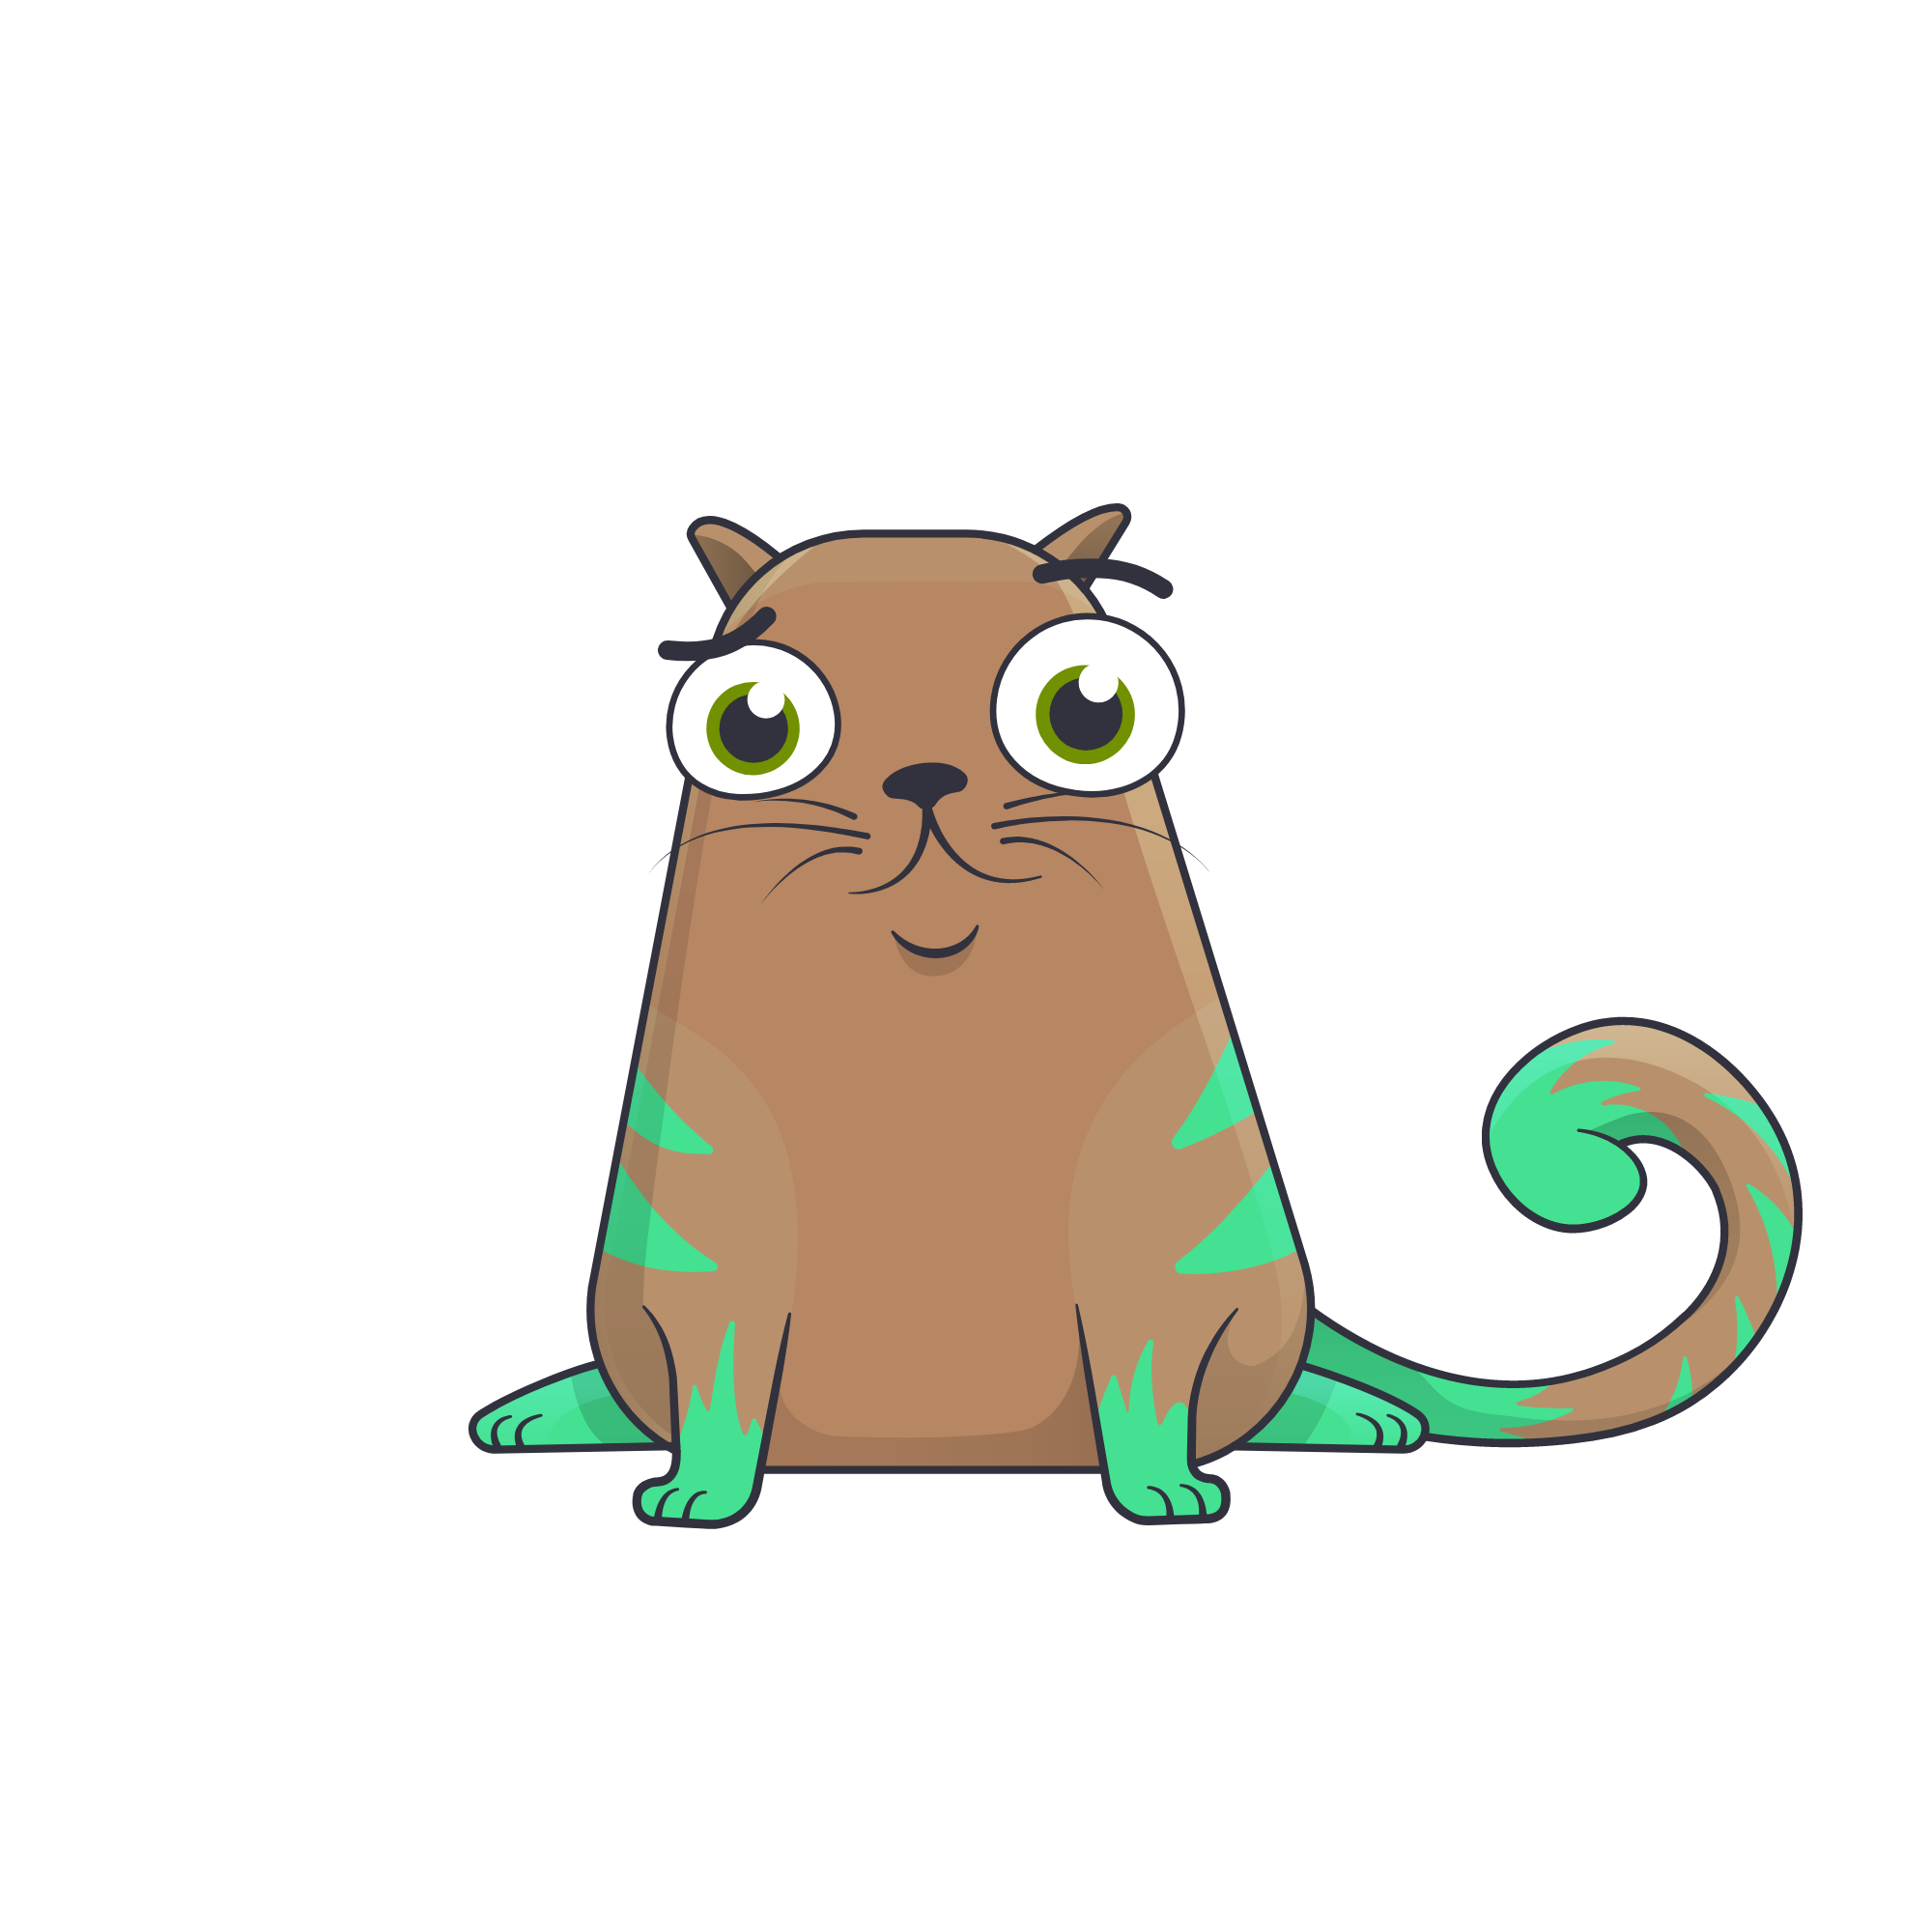 cryptokitty #1320092